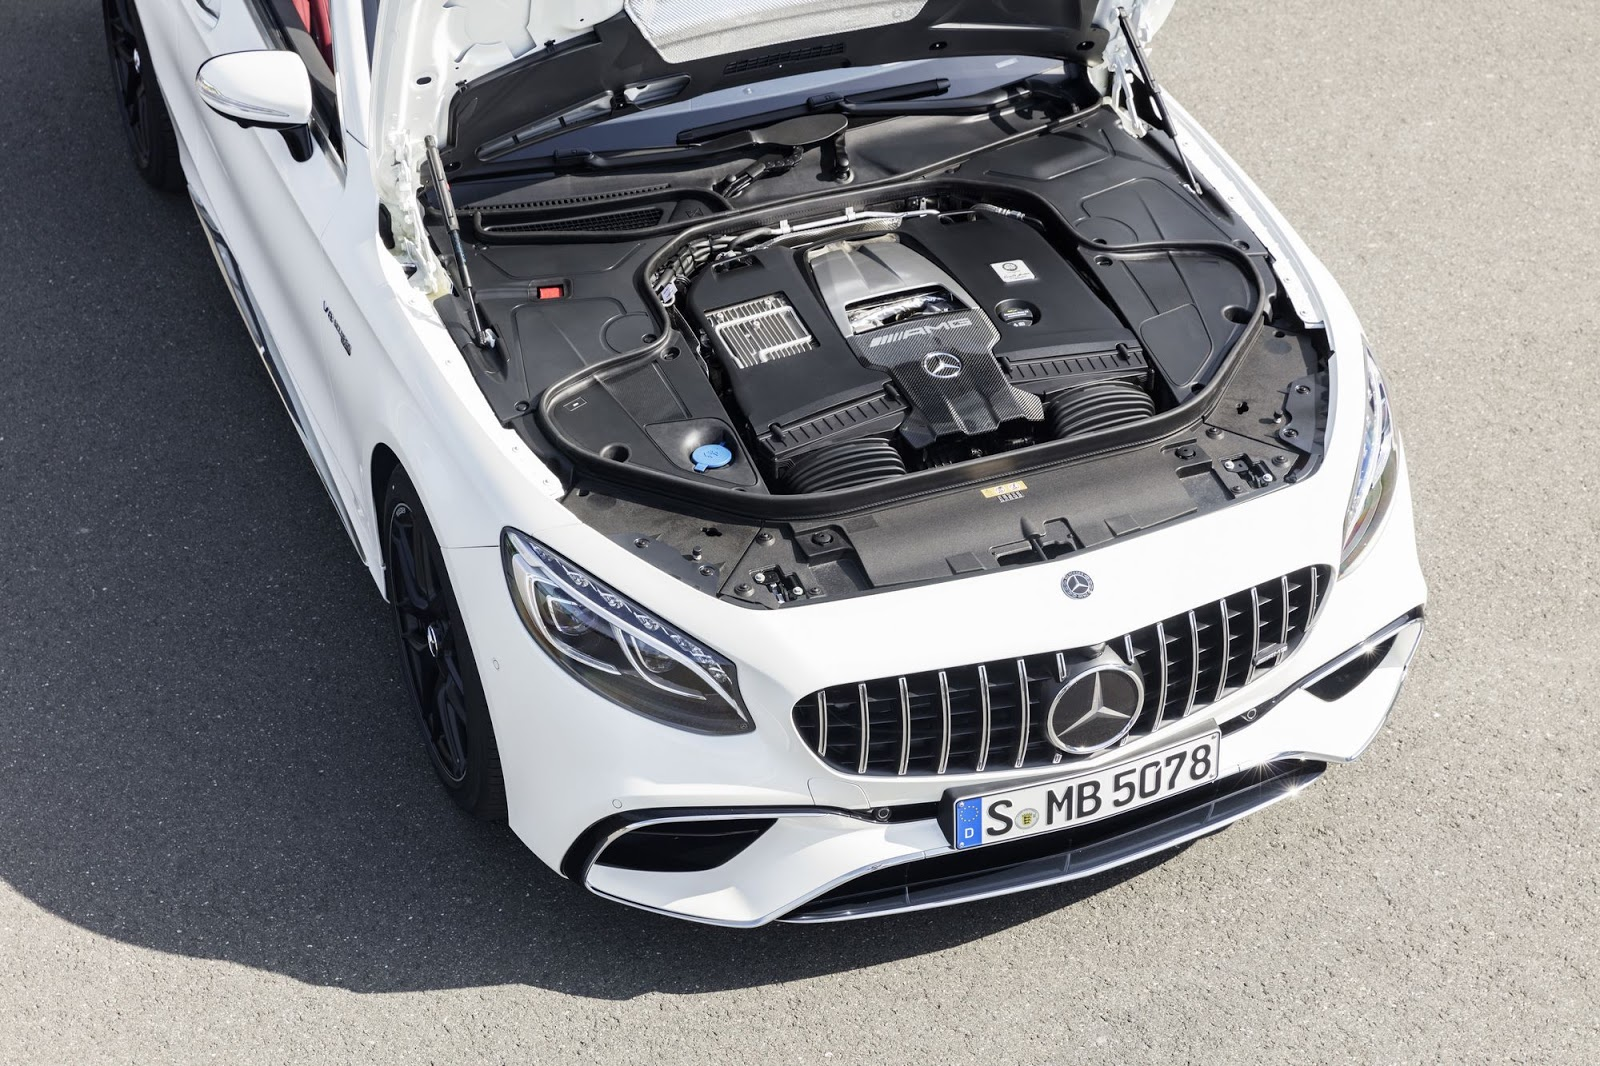 Mercedes-AMG S 63 4MATIC+ Cabriolet, 2017. Exterieur: designo diamantweiß bright, Motor;Kraftstoffverbrauch kombiniert: 10,1 l/100 km; CO2-Emissionen kombiniert: 229 g/km*